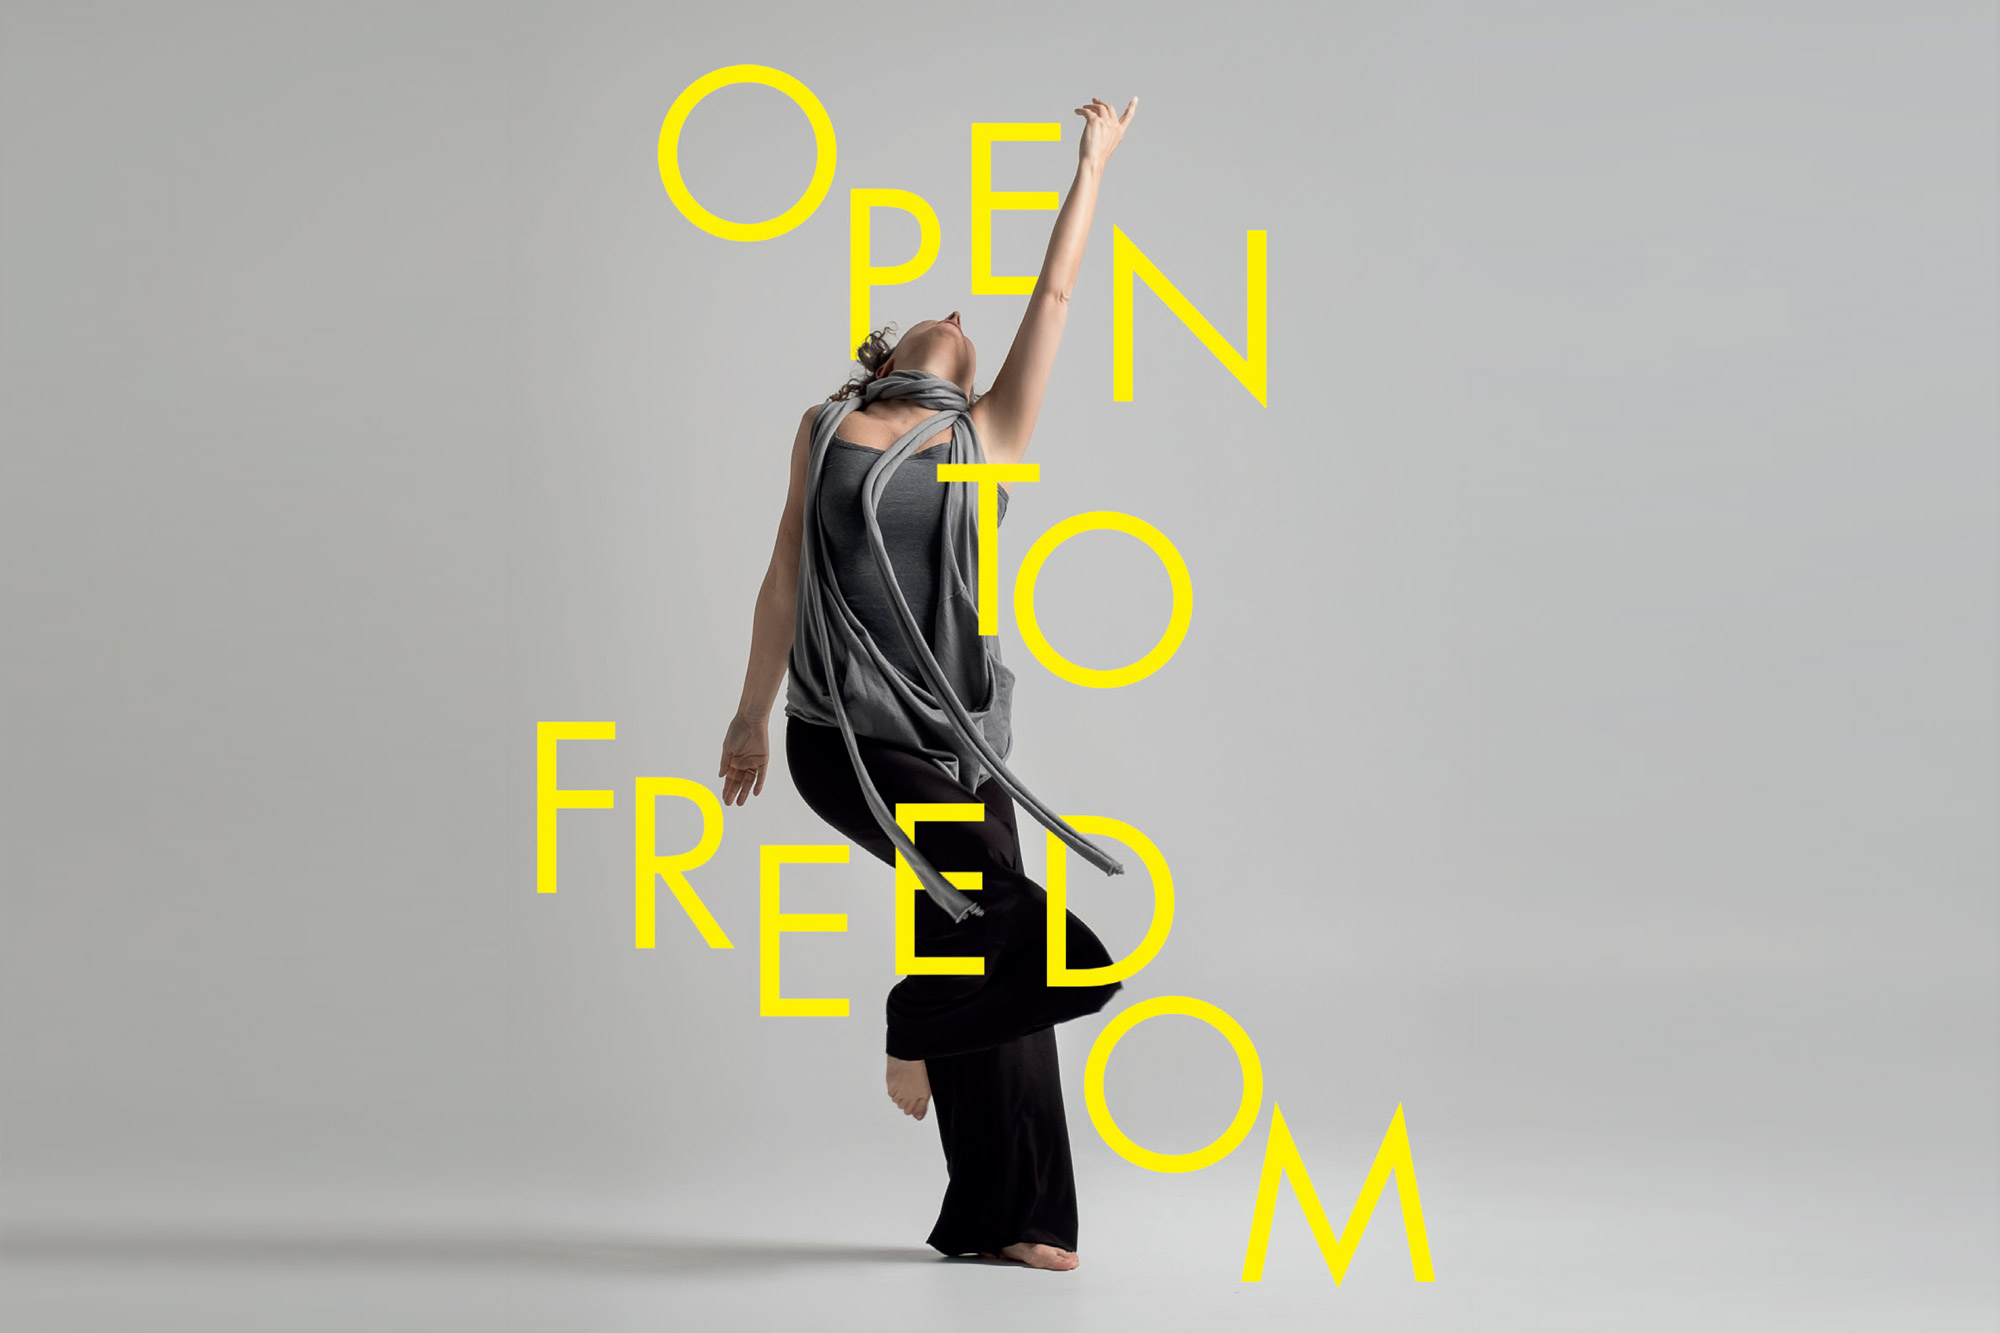 Soul Motion - Open to freedom